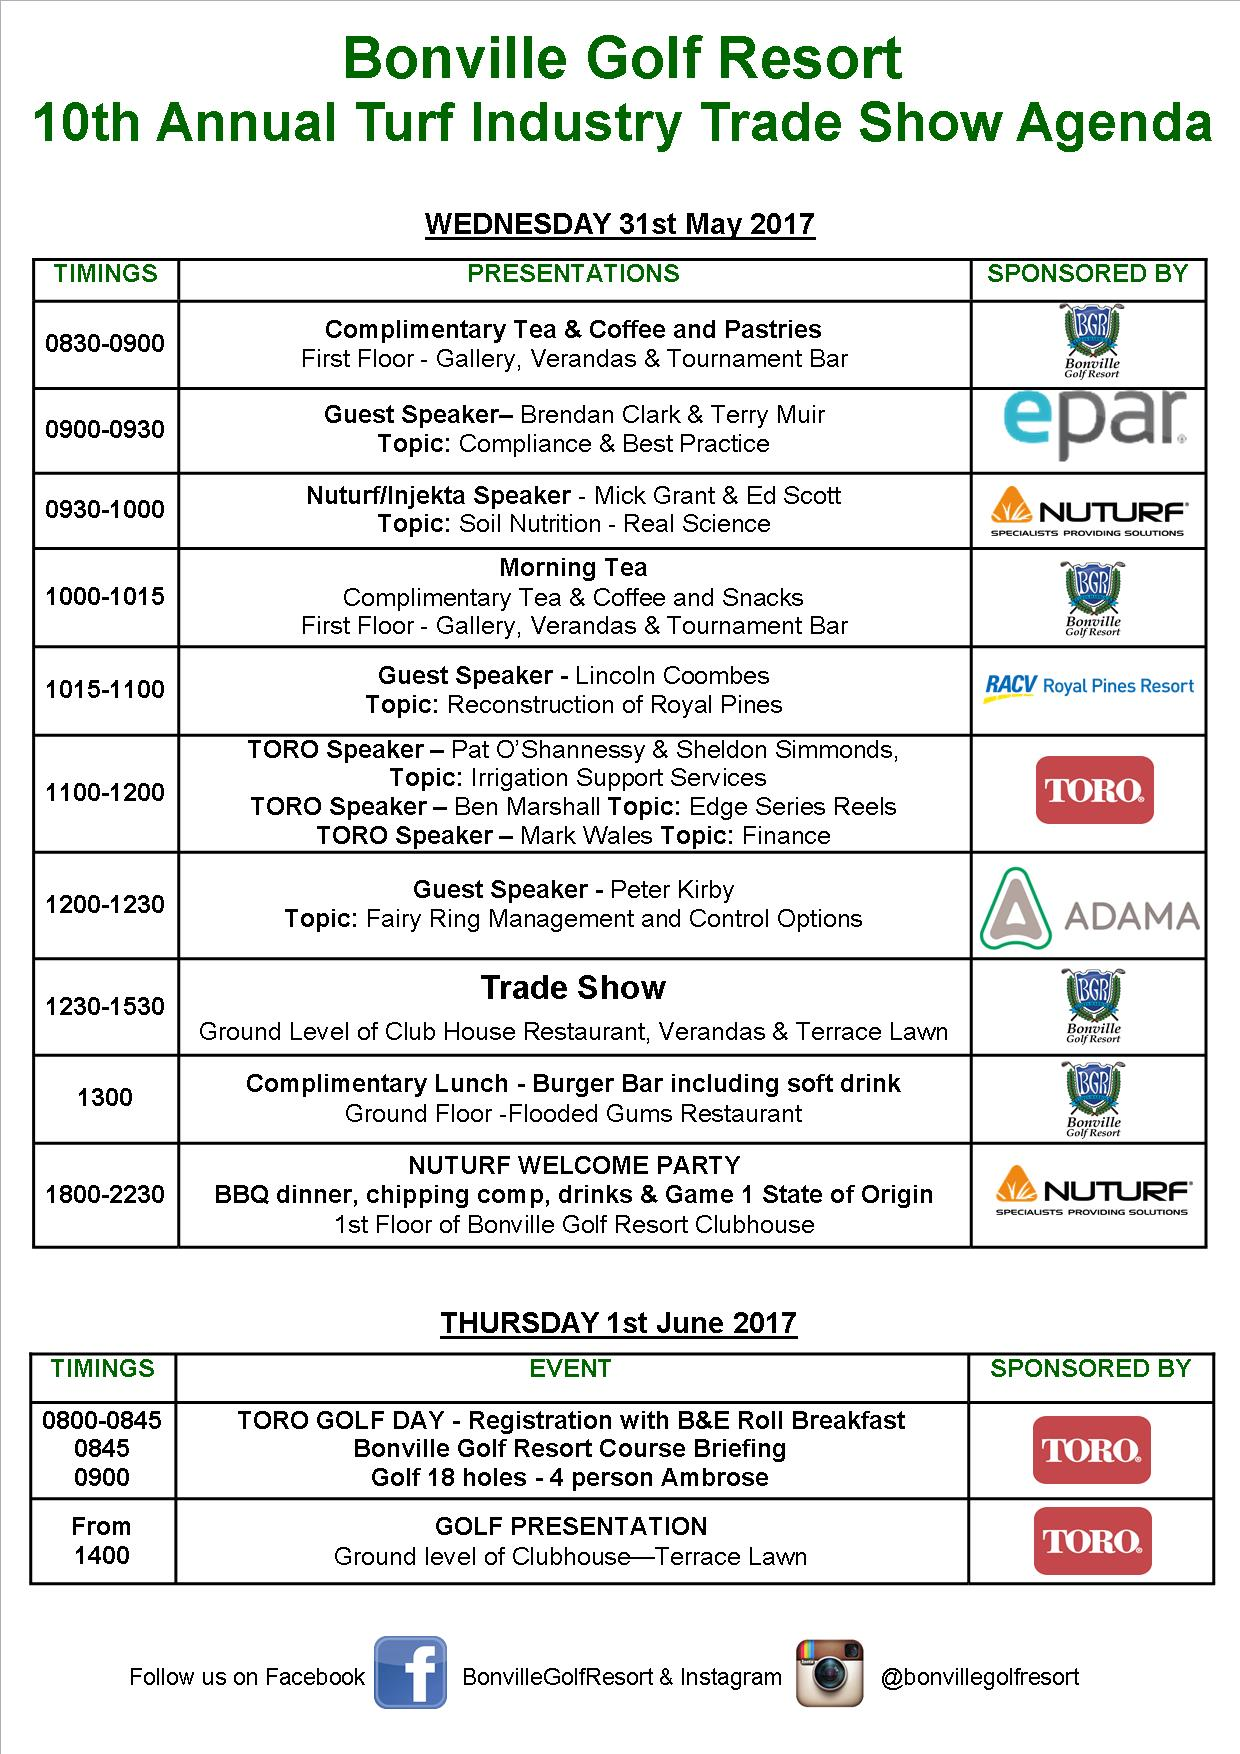 Bonville Turf Industry Trade Show Agenda 2017